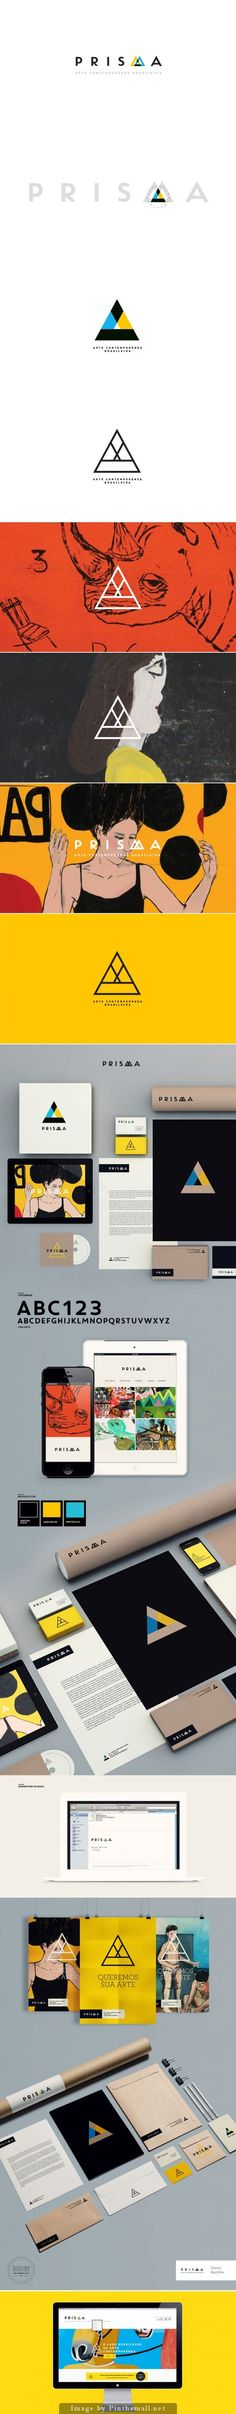 Prisma by Isabela Rodrigues | Fivestar Branding – Design and Branding Agency & Inspiration Gallery